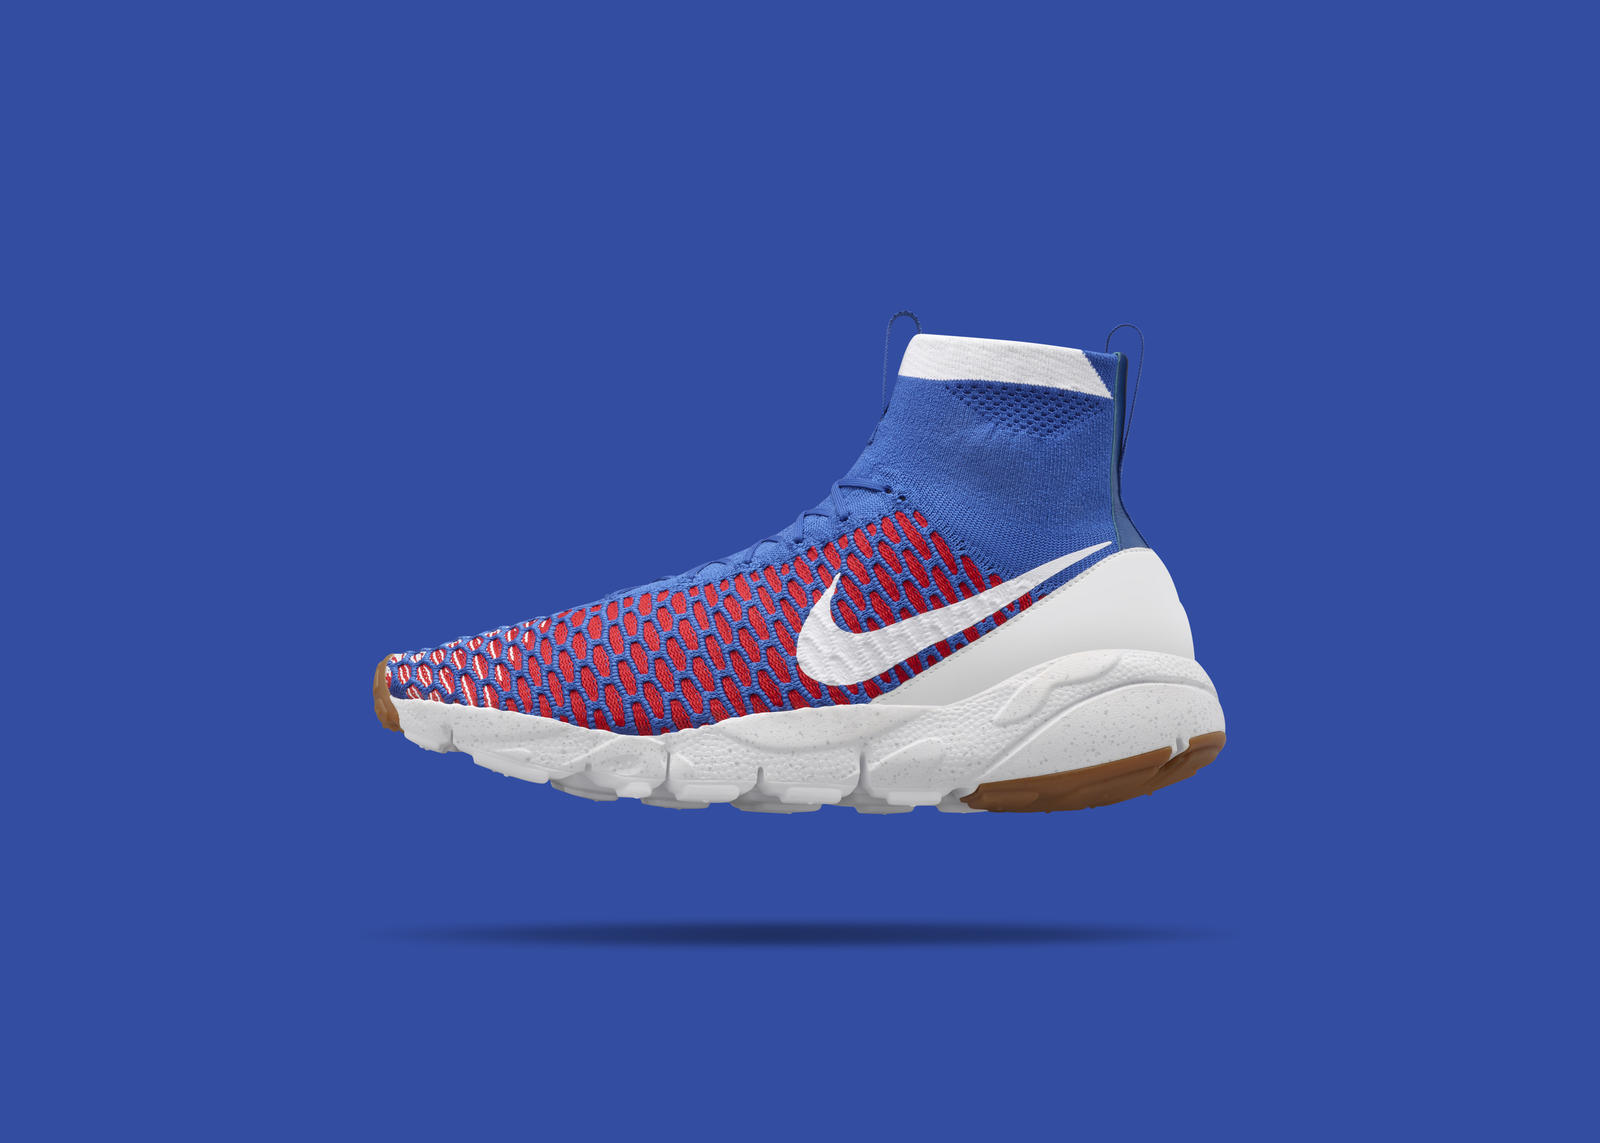 Unstoppable Innovation: The NikeLab Air Footscape Magista